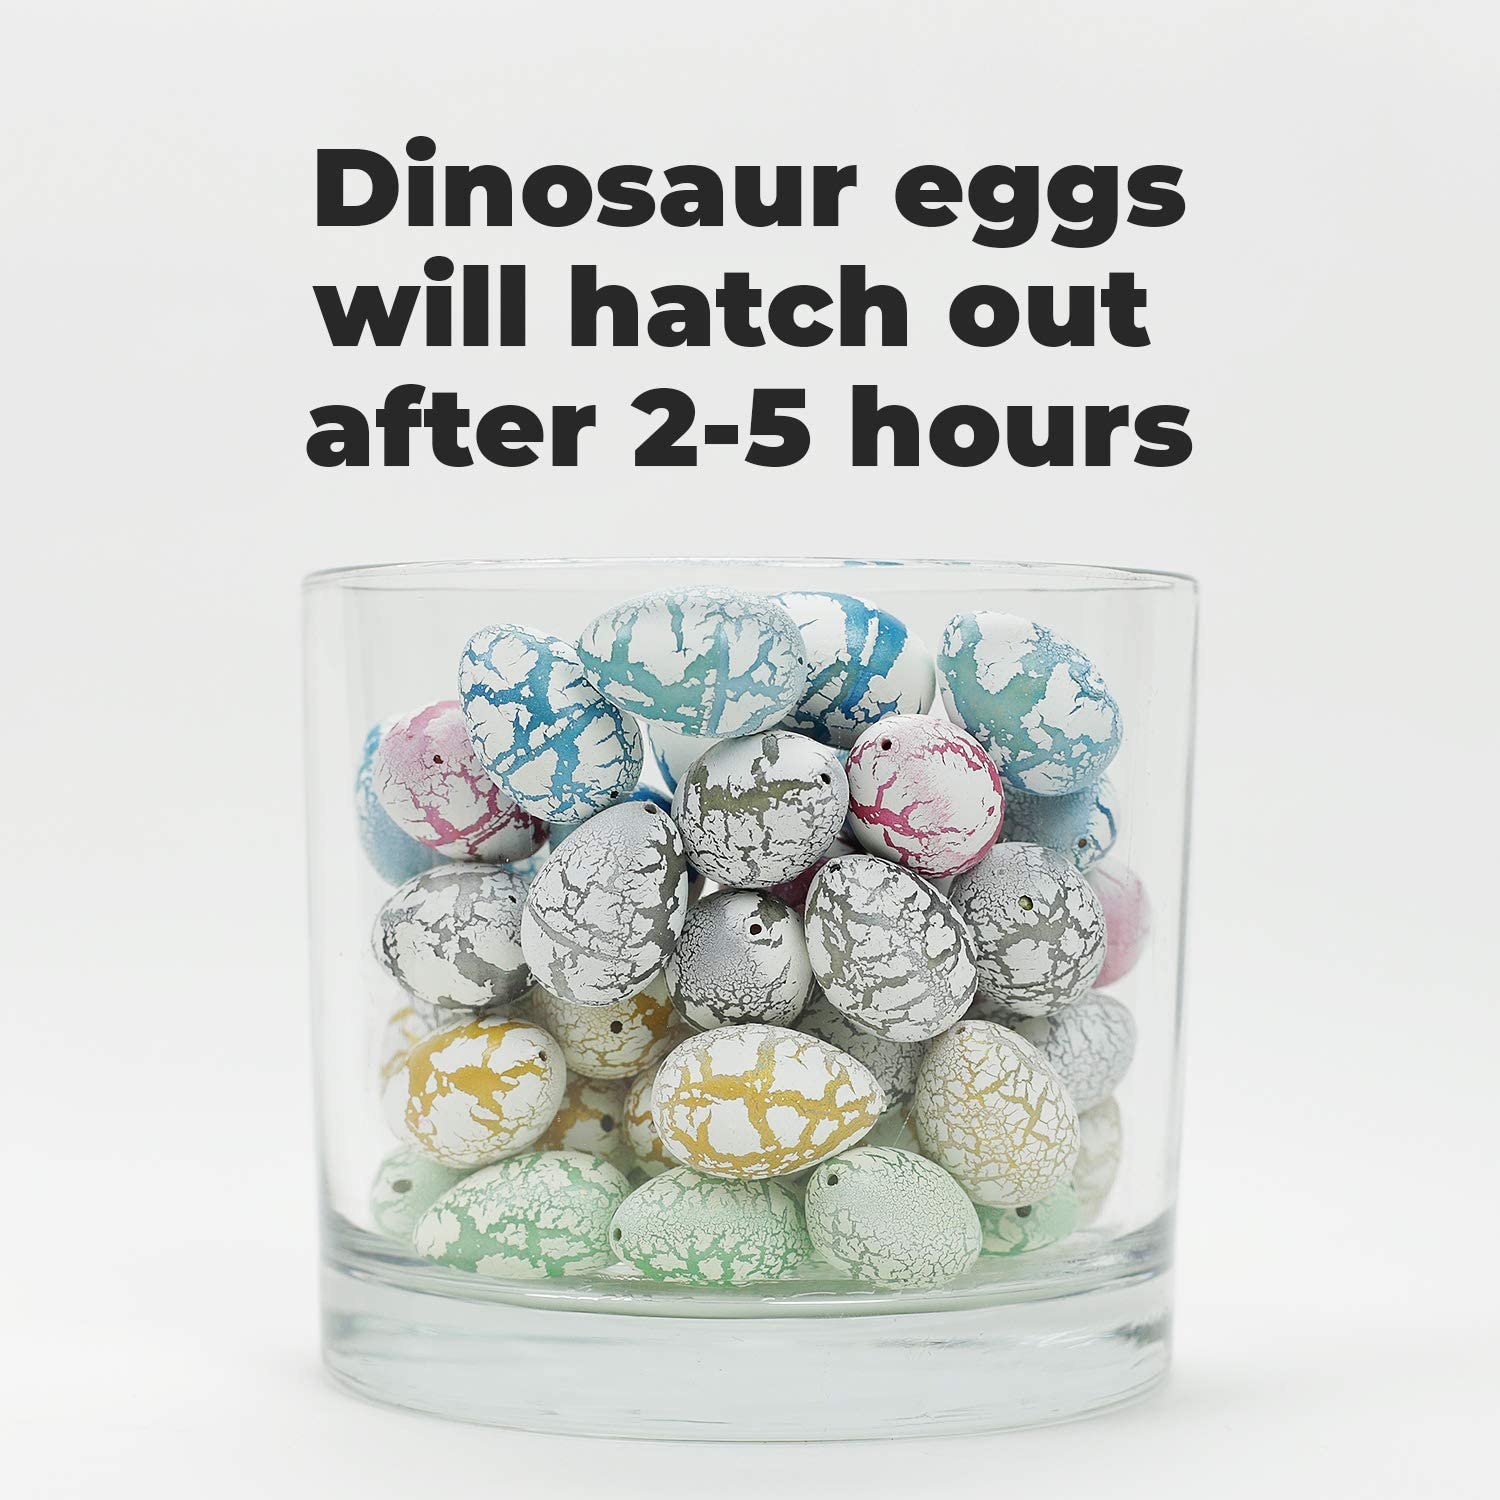 Entervending Grow Eggs Hatch in Water Toy 60 ct Prefilled Growing Surprise Inside Dinosaur Figures Hatching Dino Toys Educational Hatchimal Party Favors Egg Hunt